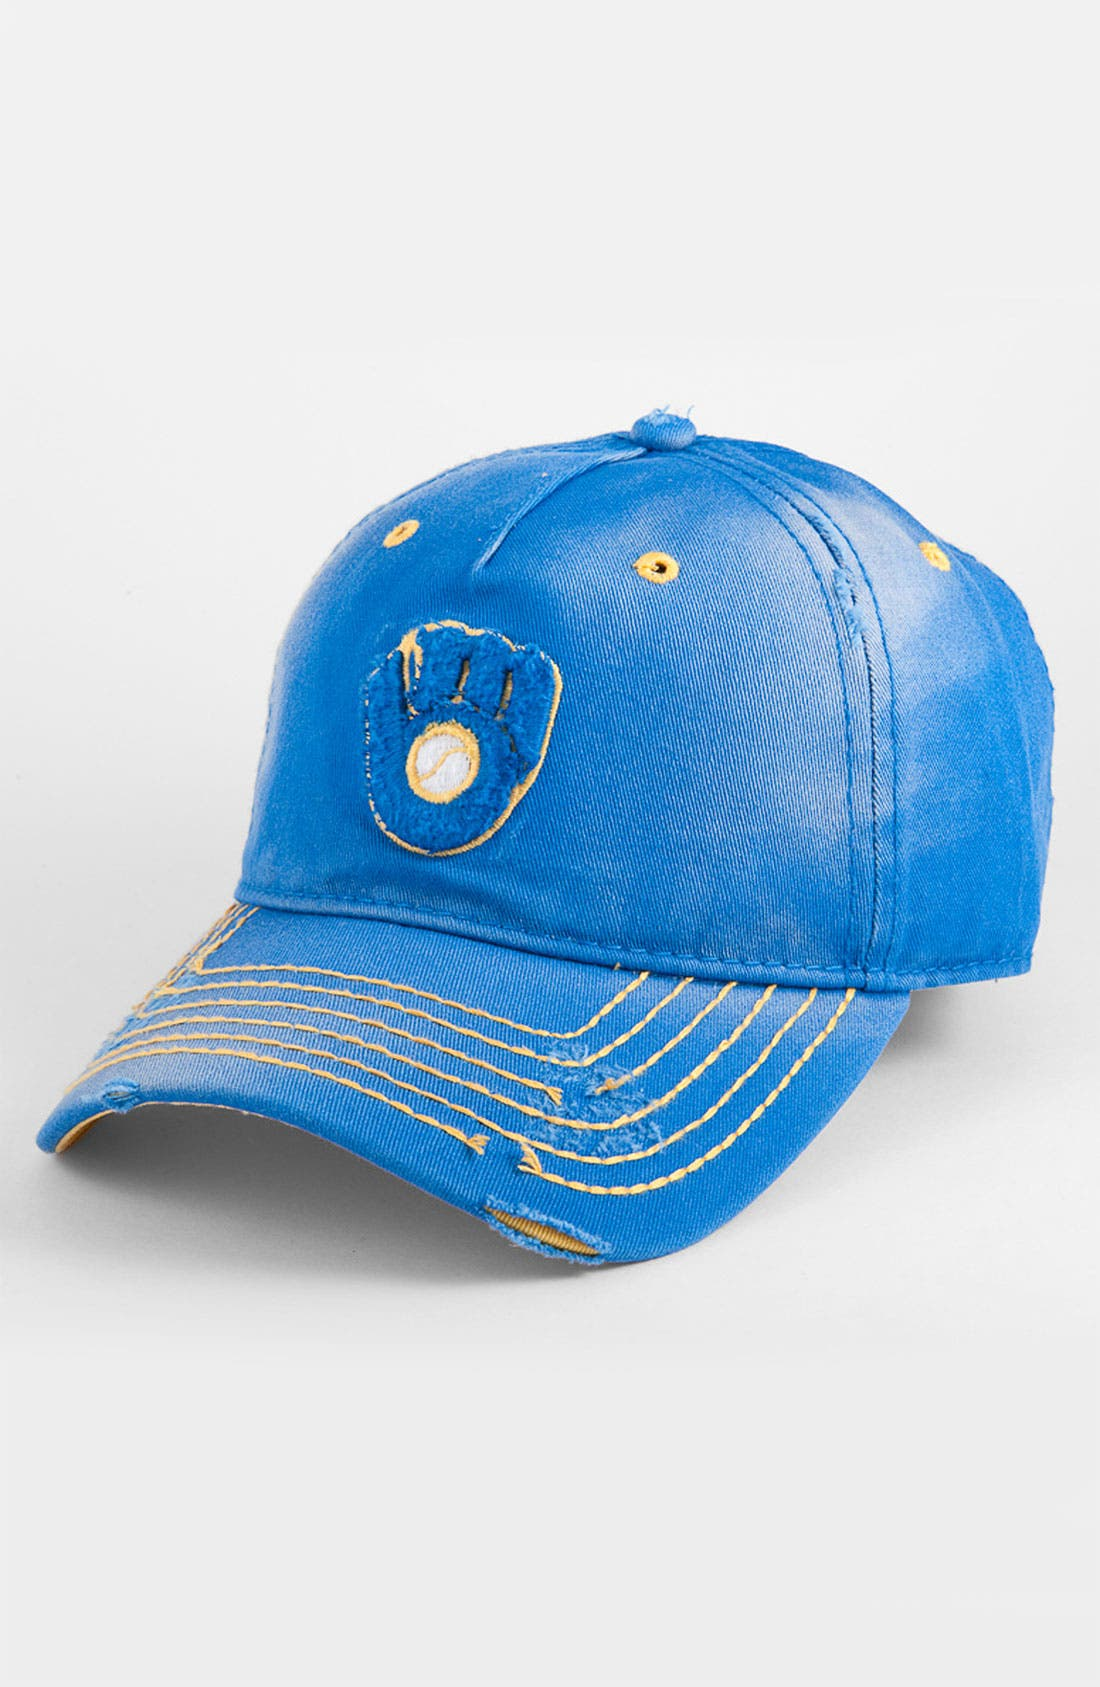 Main Image - American Needle 'Brewers' Baseball Cap